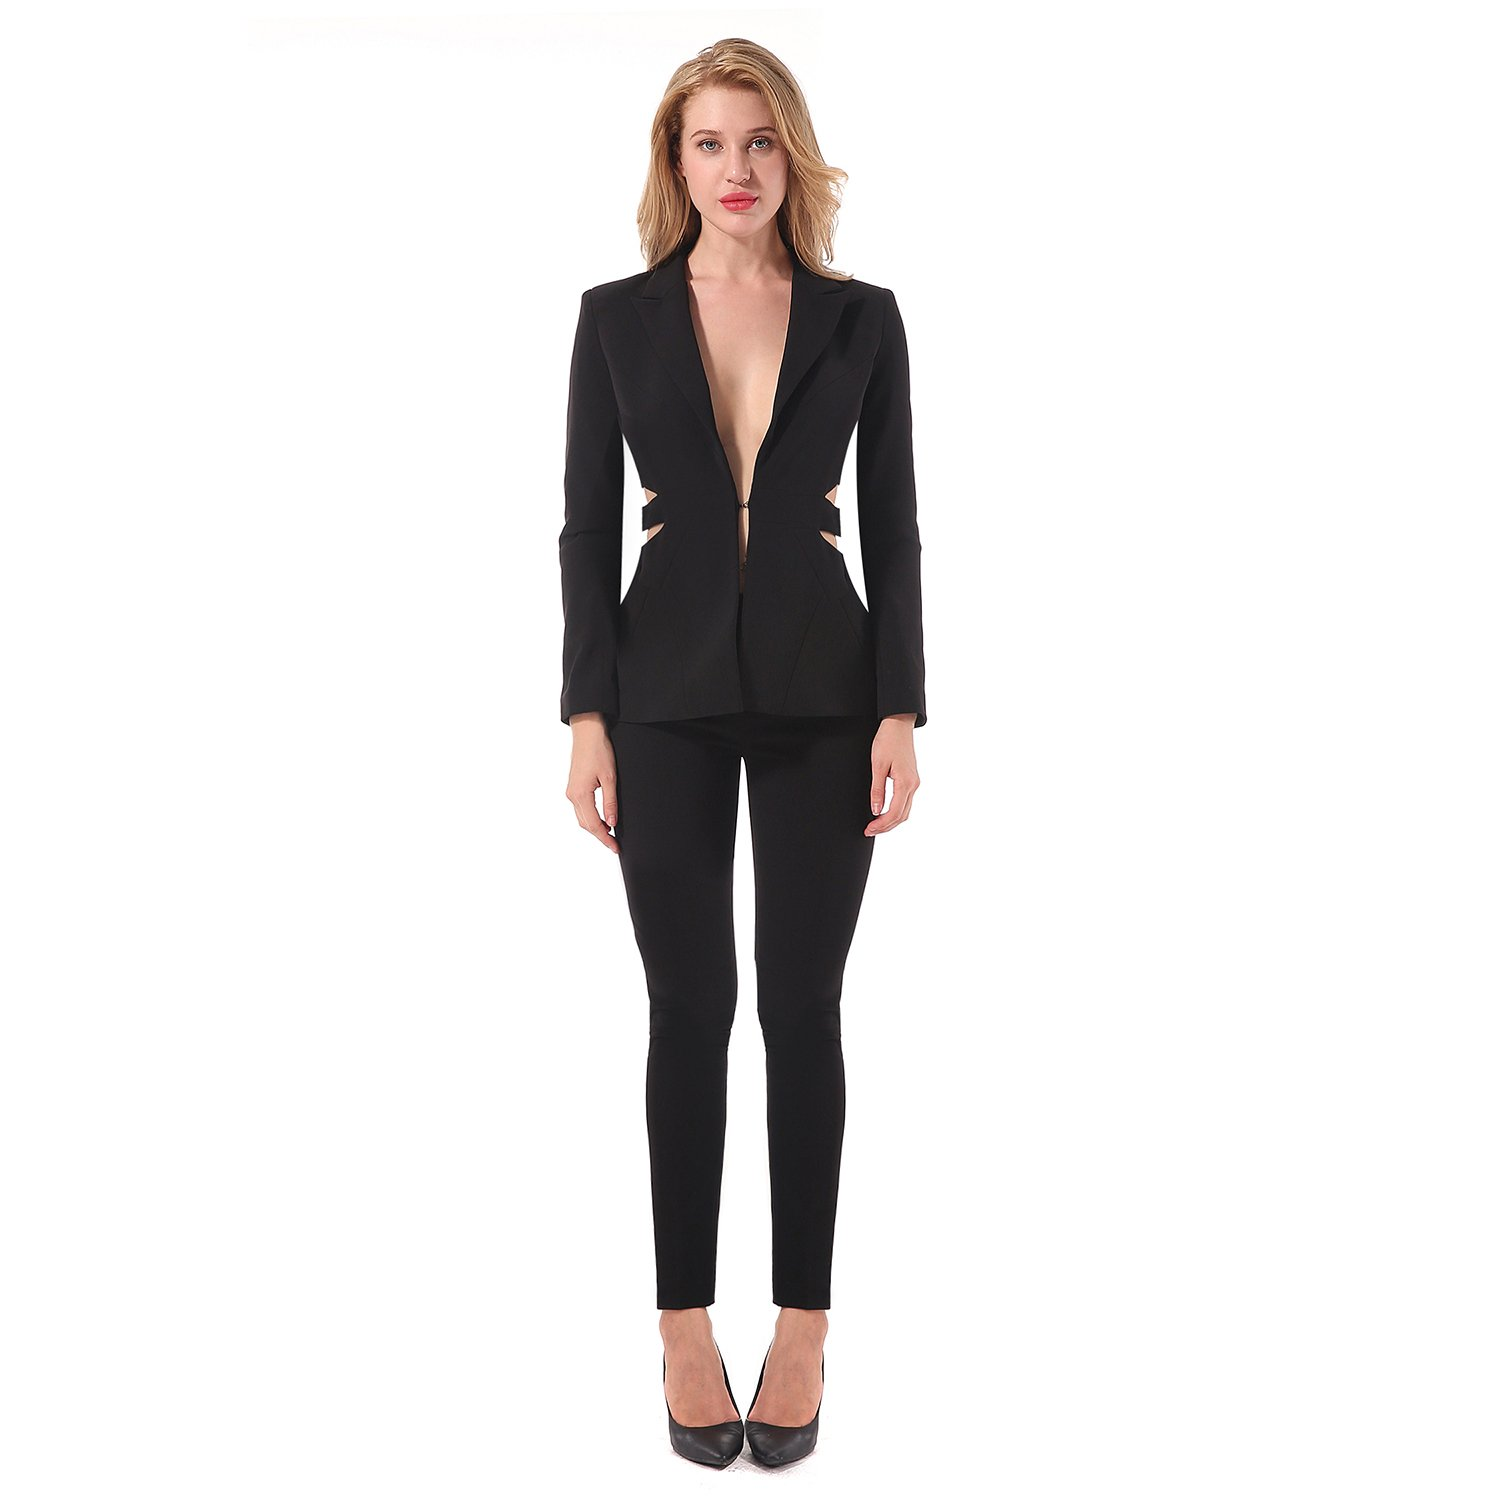 CIEMIILI 2017 Summer Fashion Women Hollow out Pant Suits